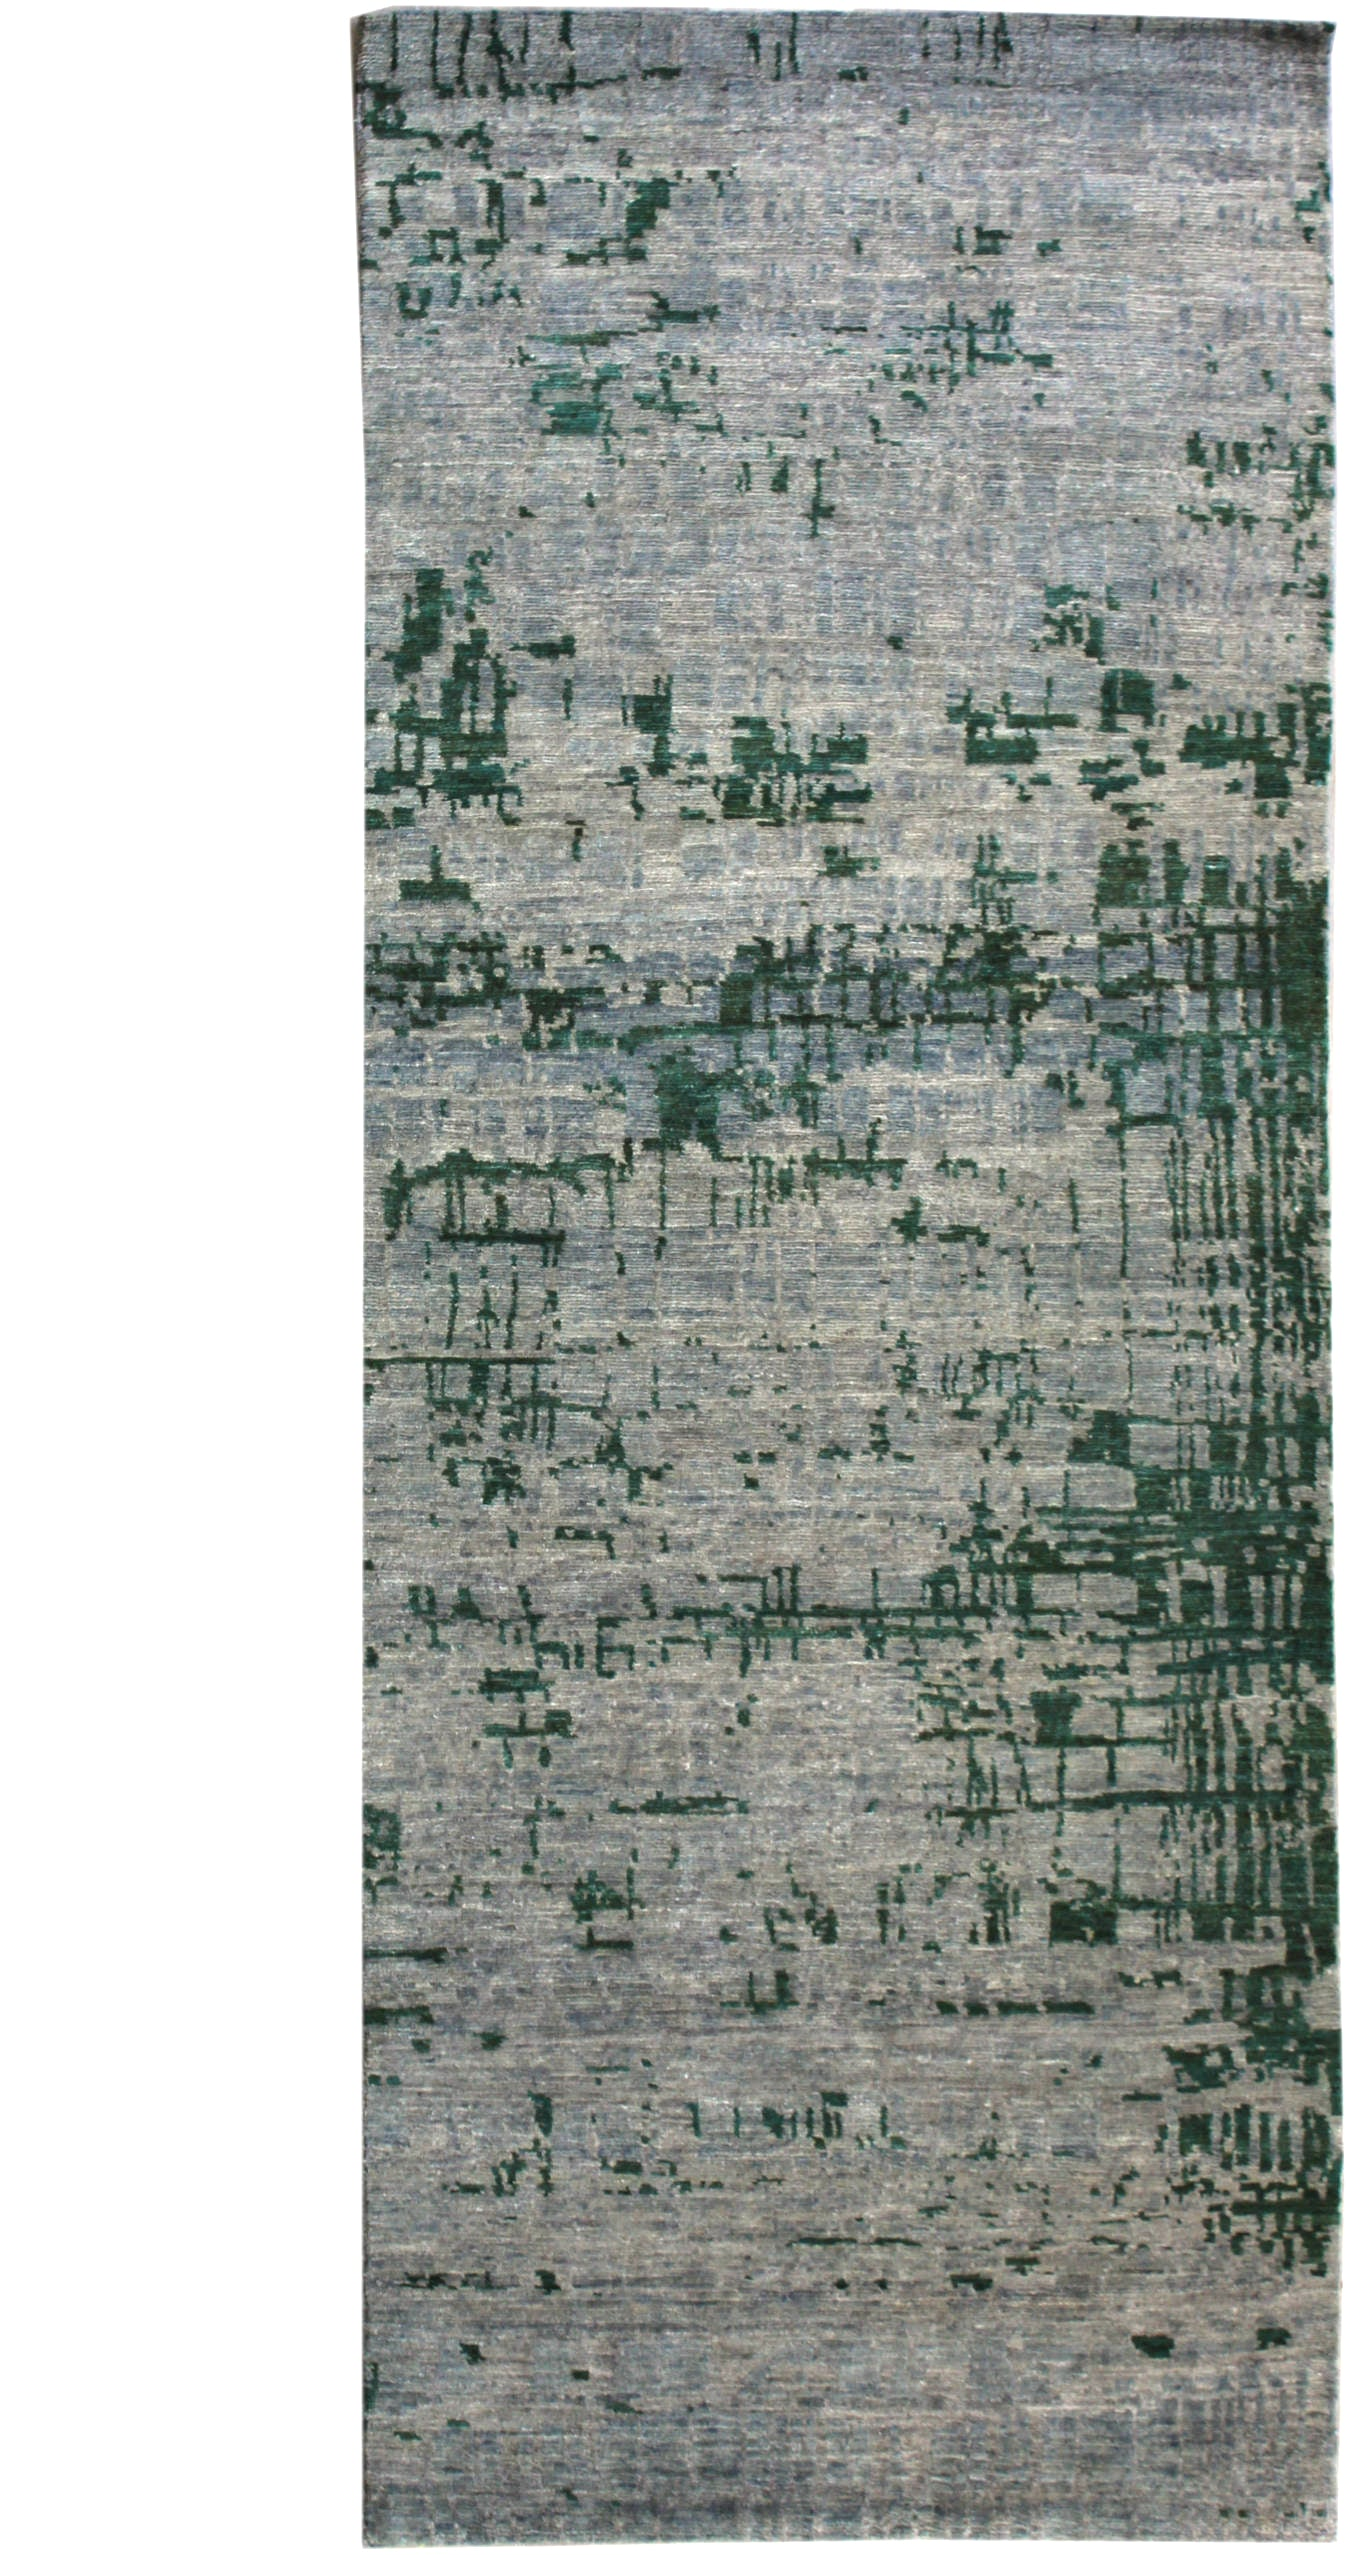 Erased Look Handwoven Transitional Rug